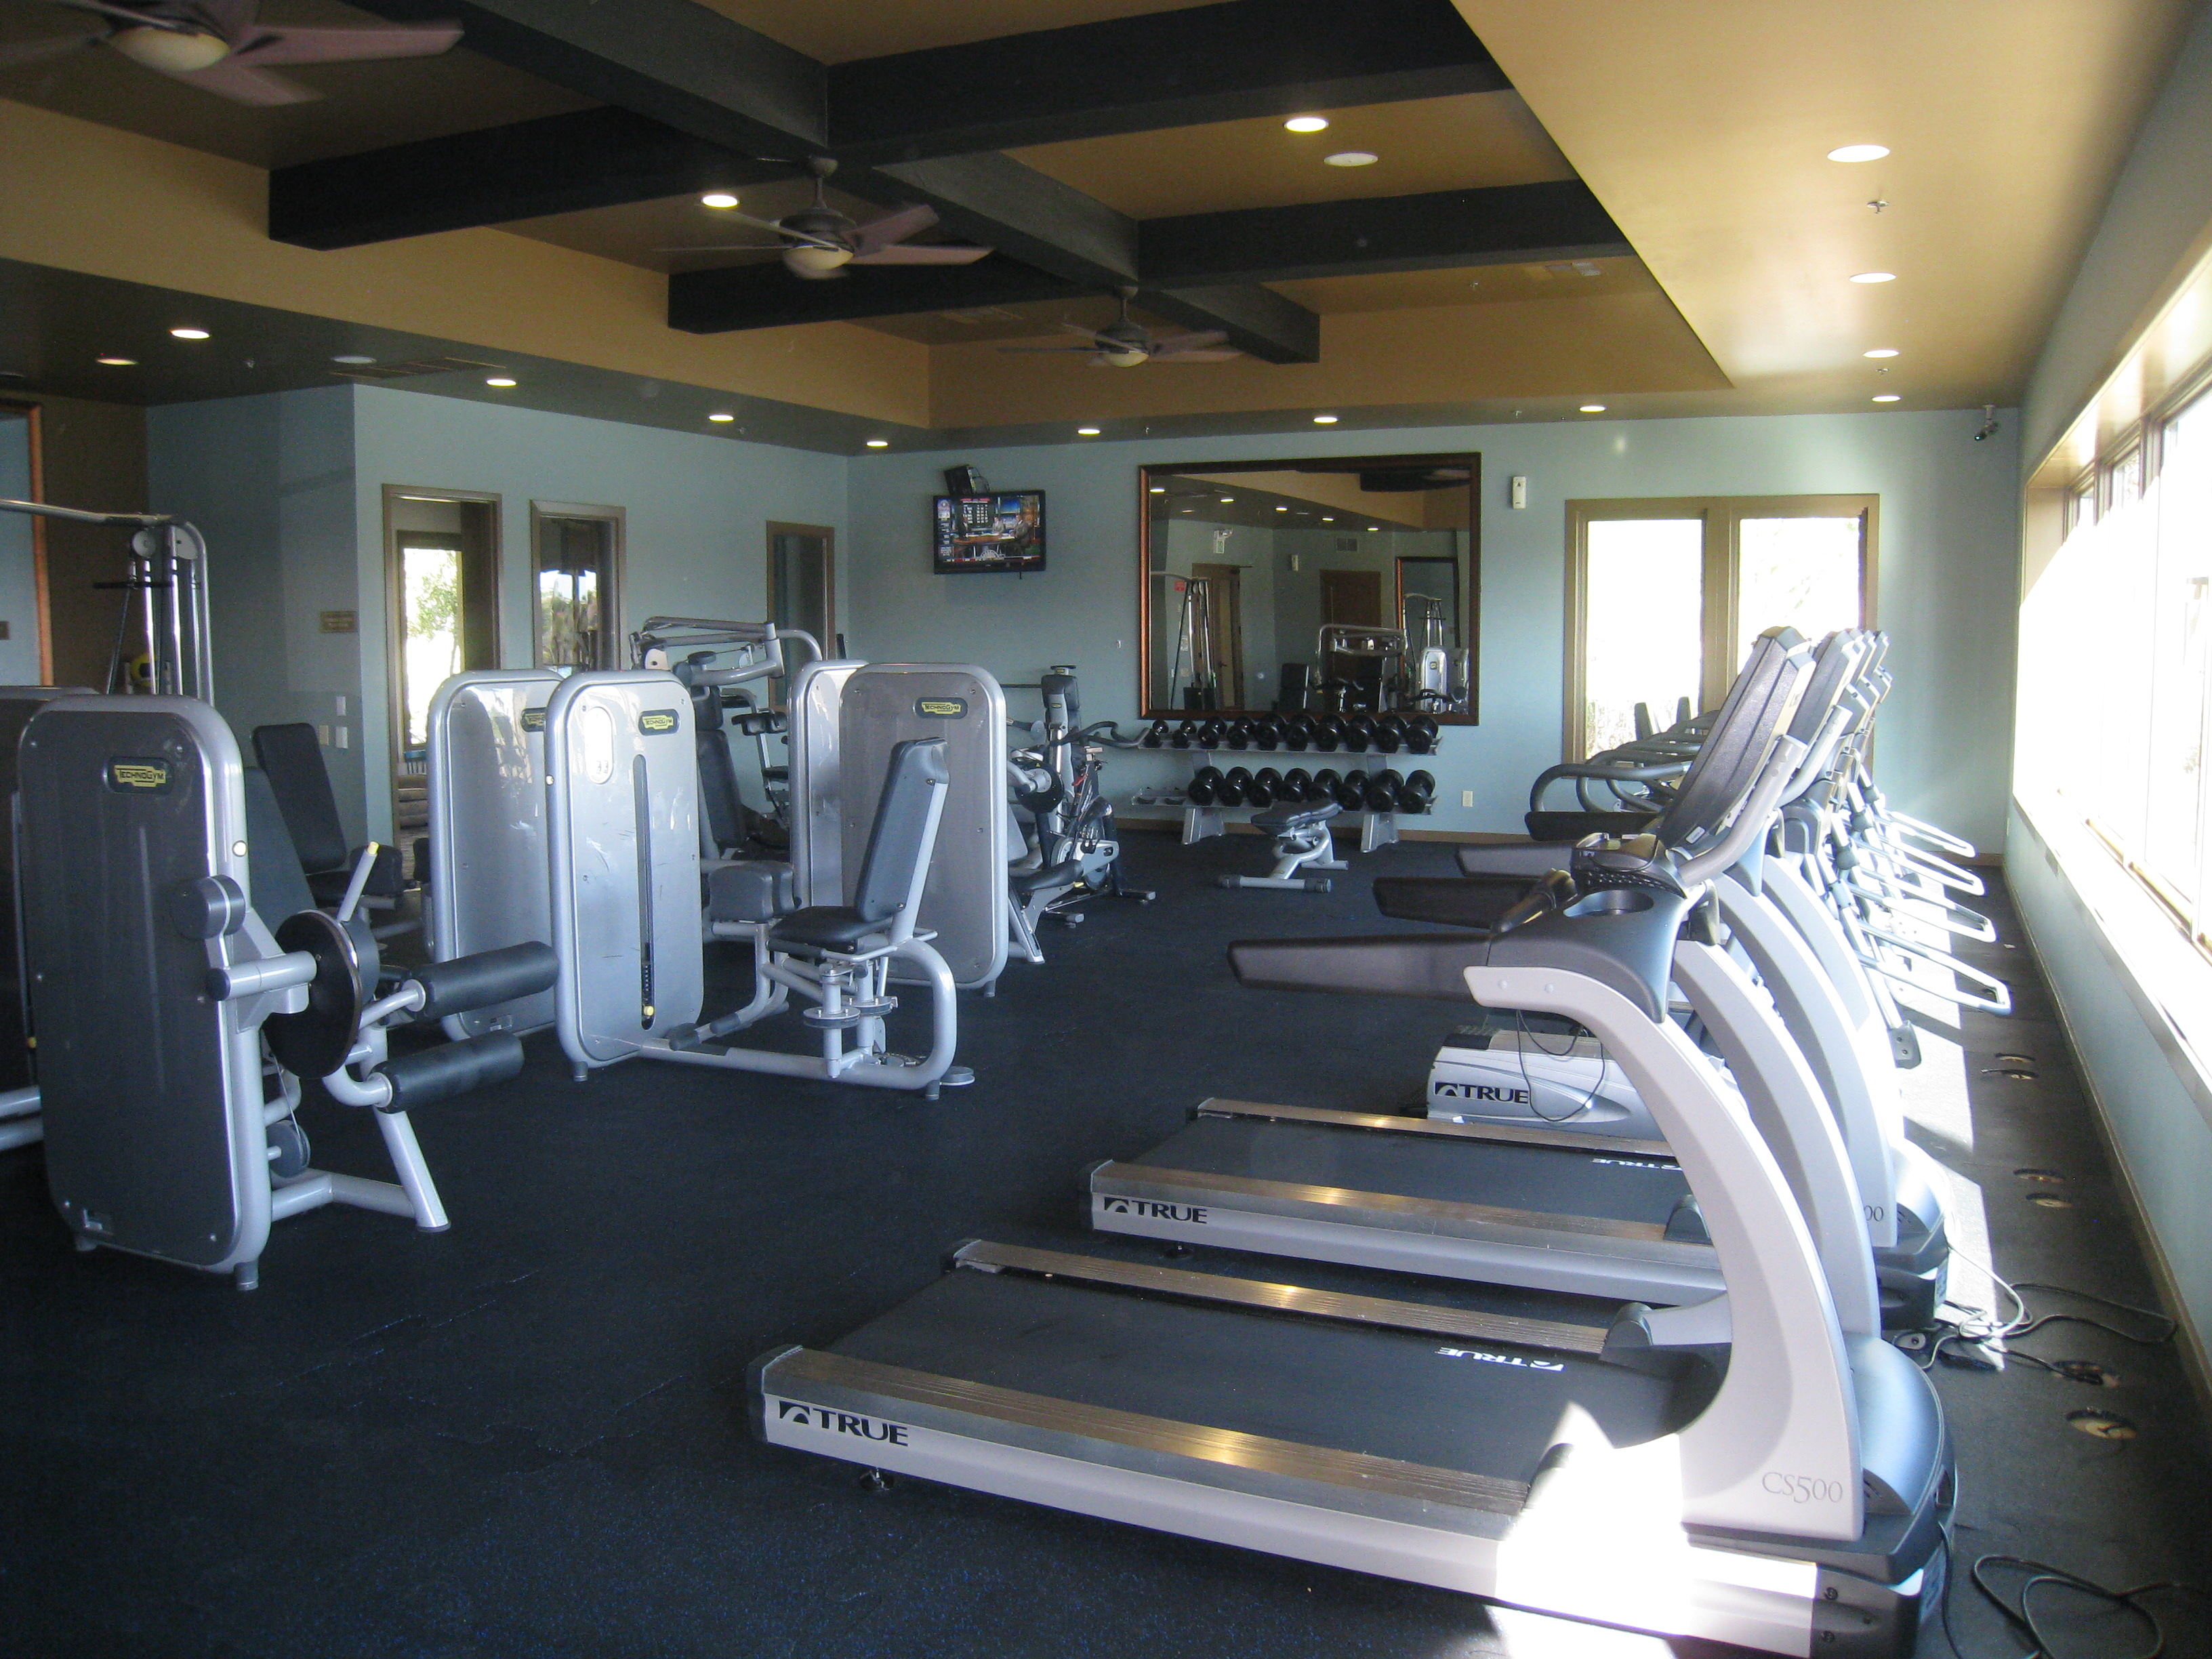 Terra Lago fitness center